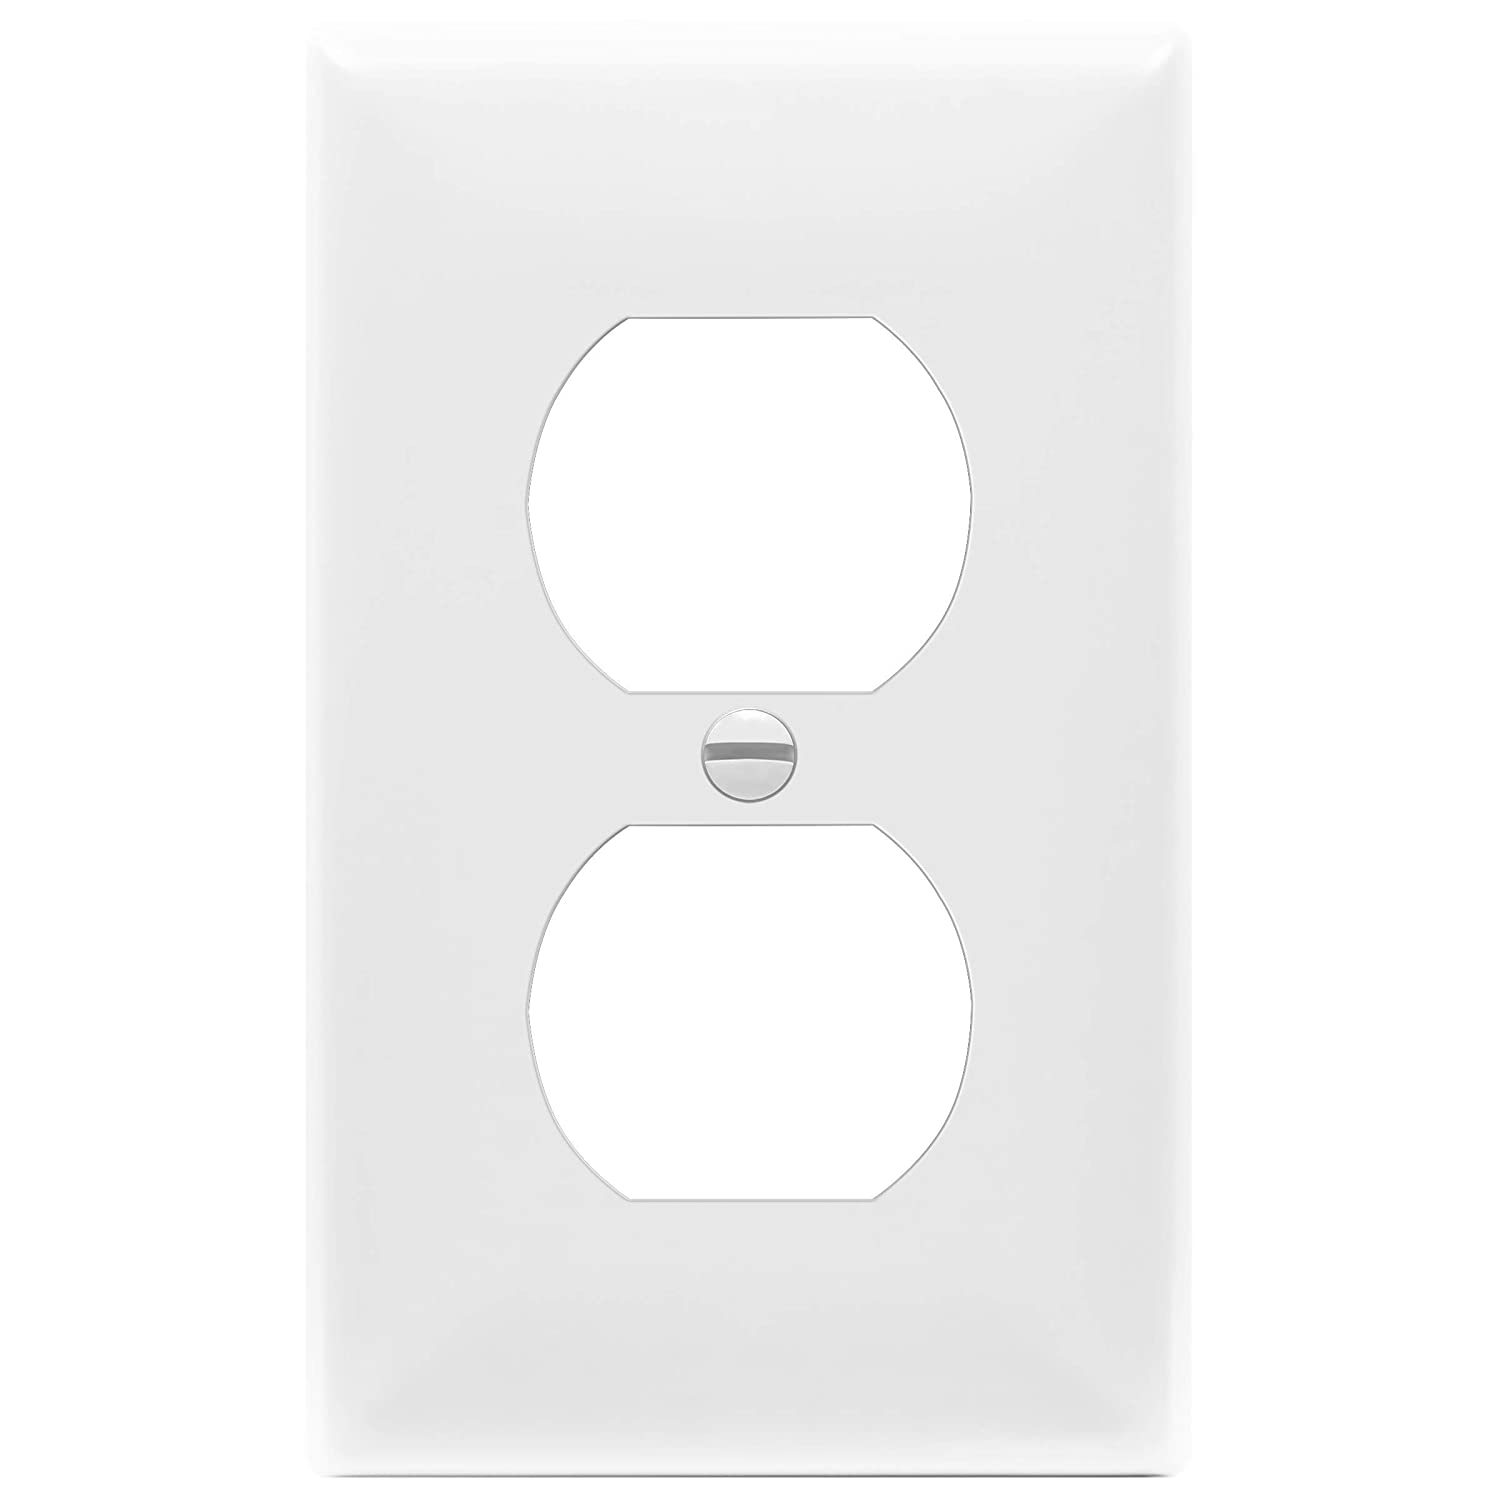 Enerlites 8821-W Duplex Receptacle Outlet Wall Plate, Standard Size 1-Gang, Polycarbonate Thermoplastic, White